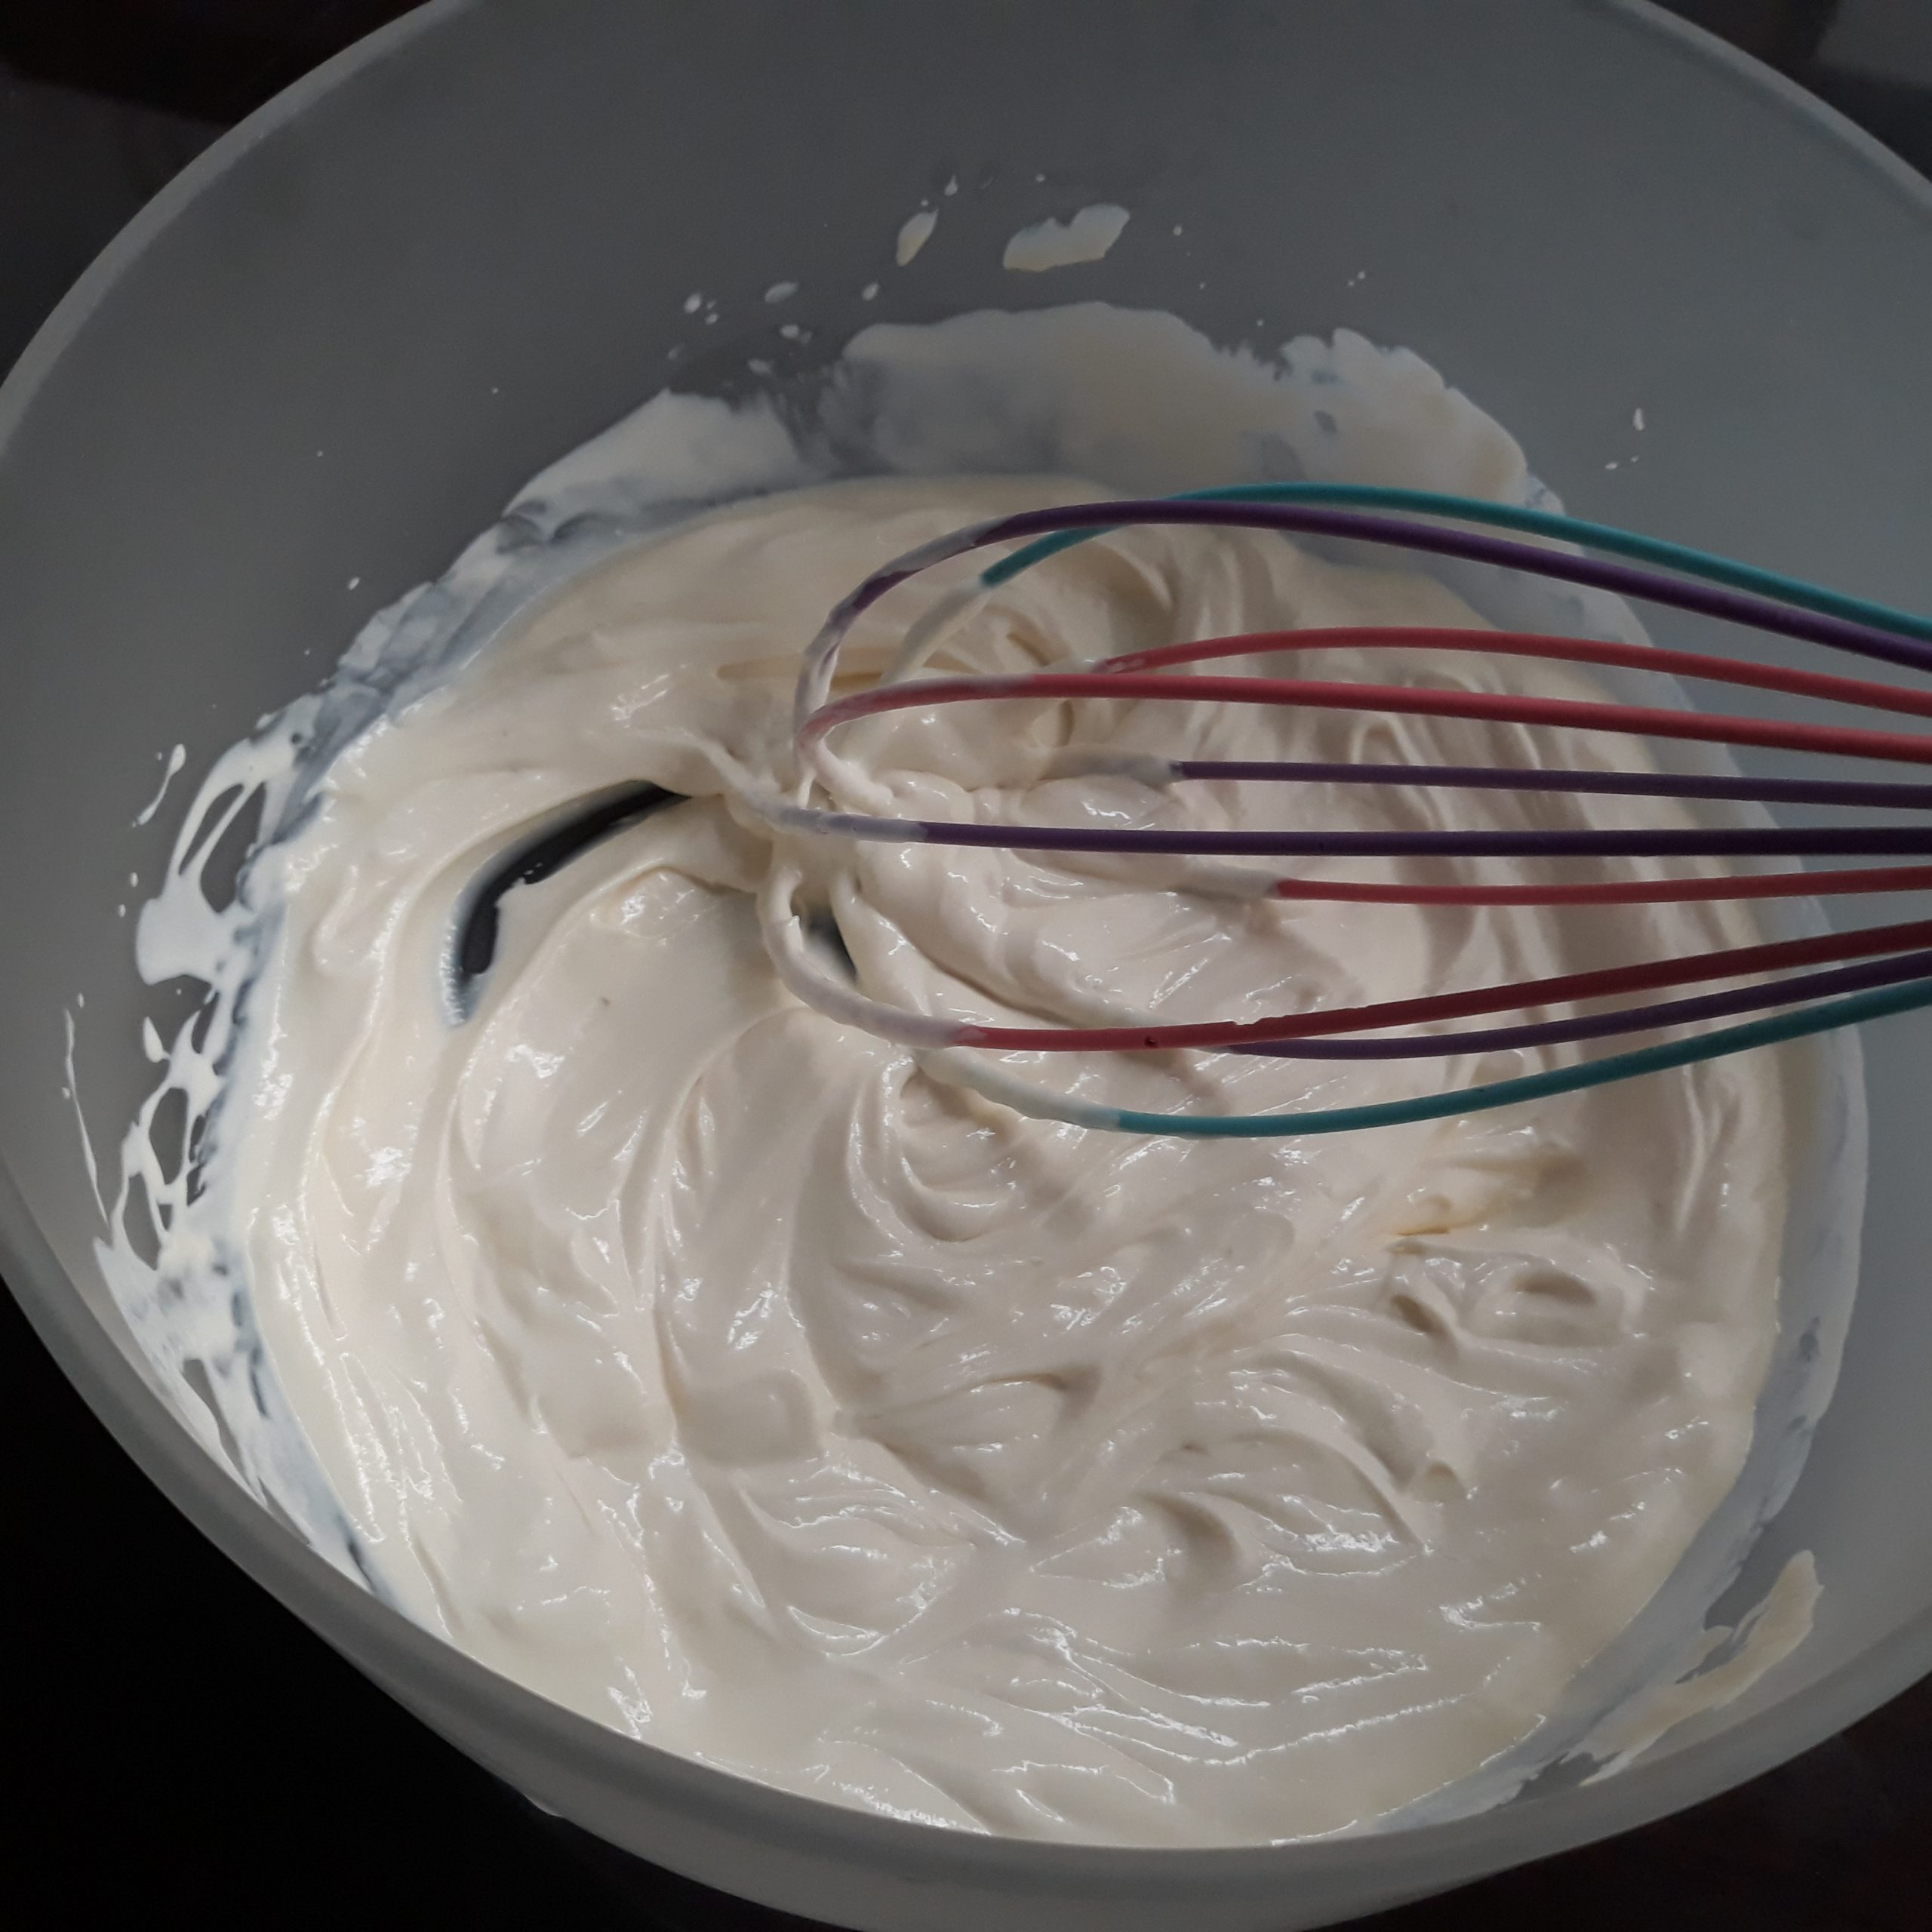 Whisking cream in a bowl.